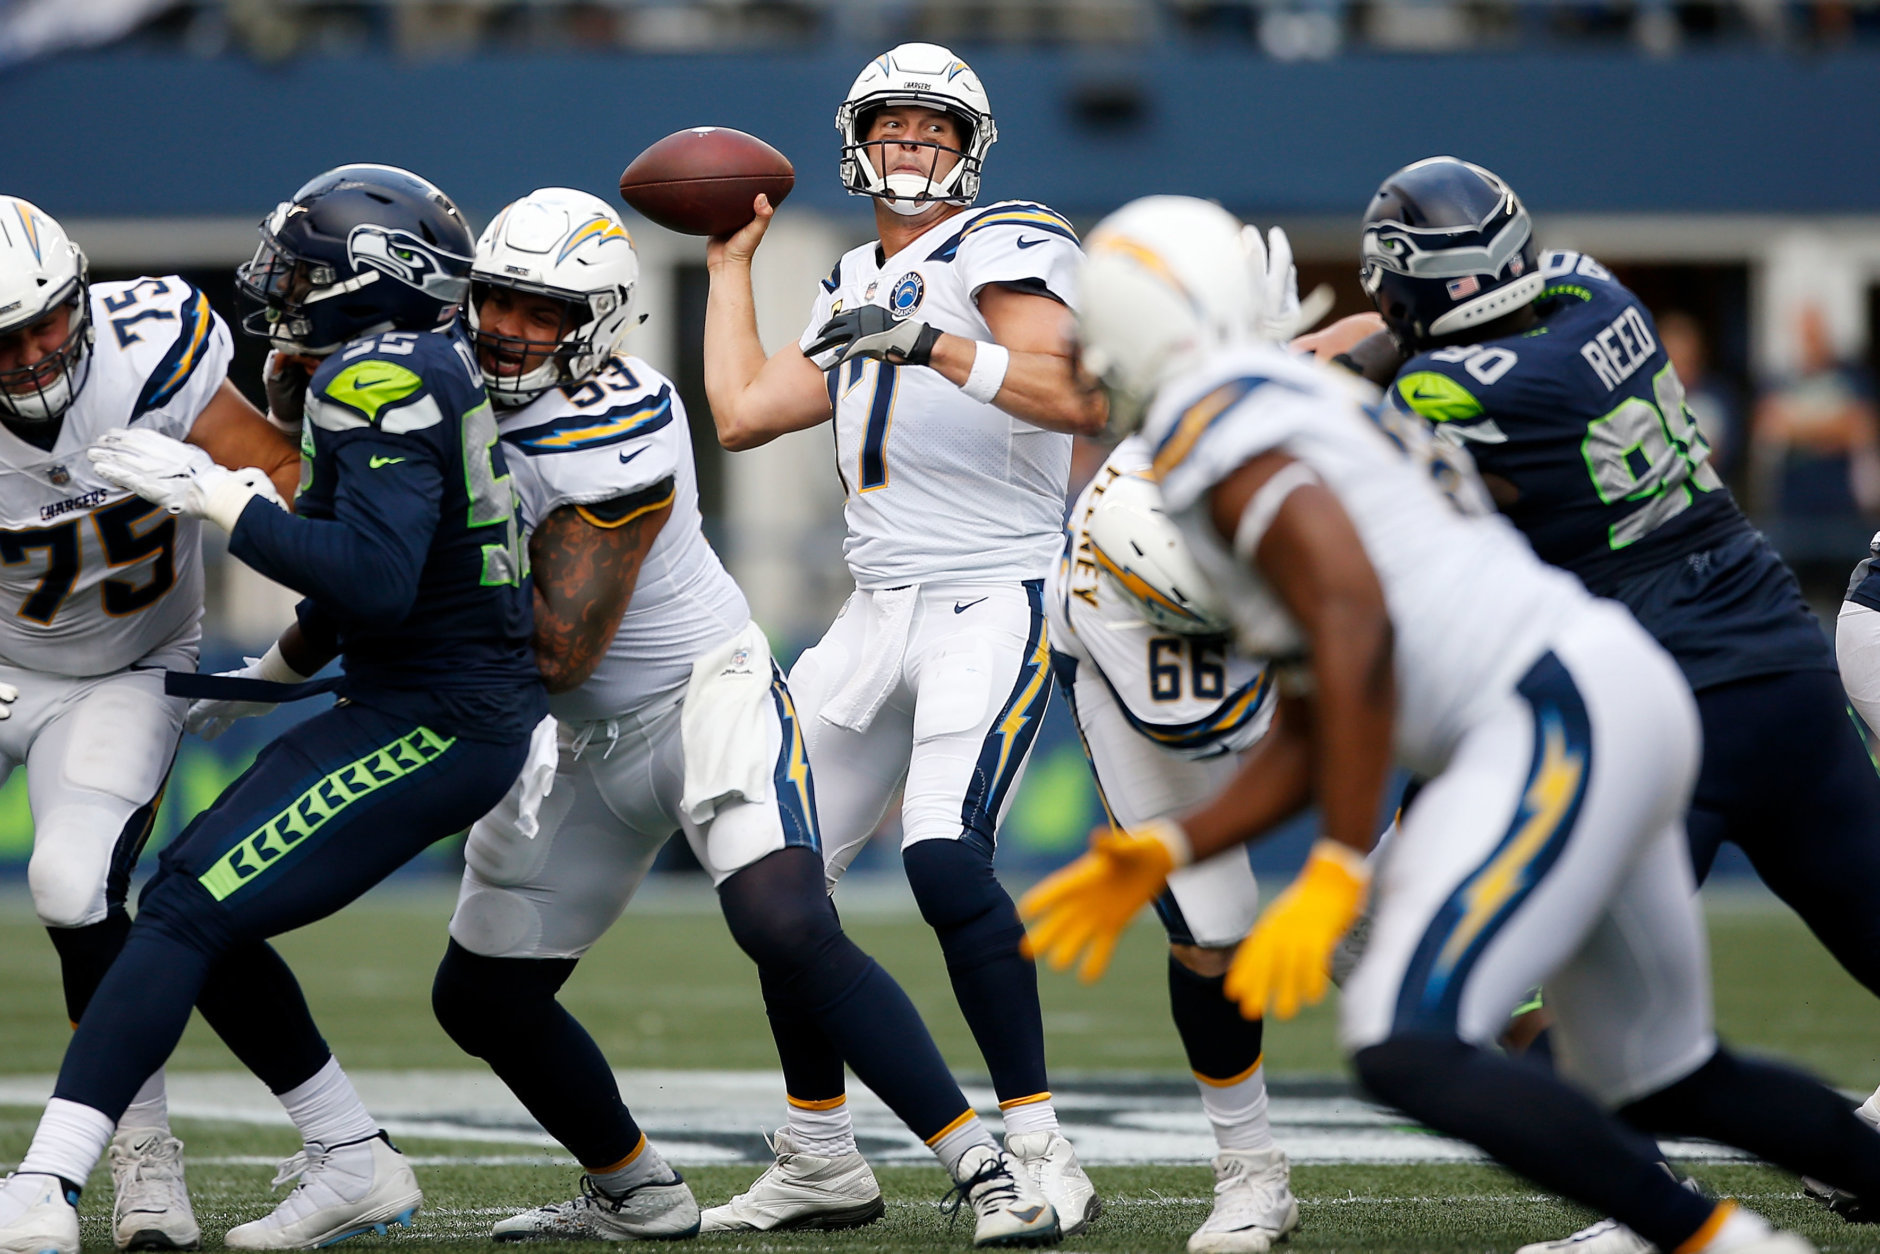 SEATTLE, WASHINGTON - NOVEMBER 04:  Philip Rivers #17 of the Los Angeles Chargers throws a pass in the second quarter against the Seattle Seahawks at CenturyLink Field on November 04, 2018 in Seattle, Washington. (Photo by Otto Greule Jr/Getty Images)